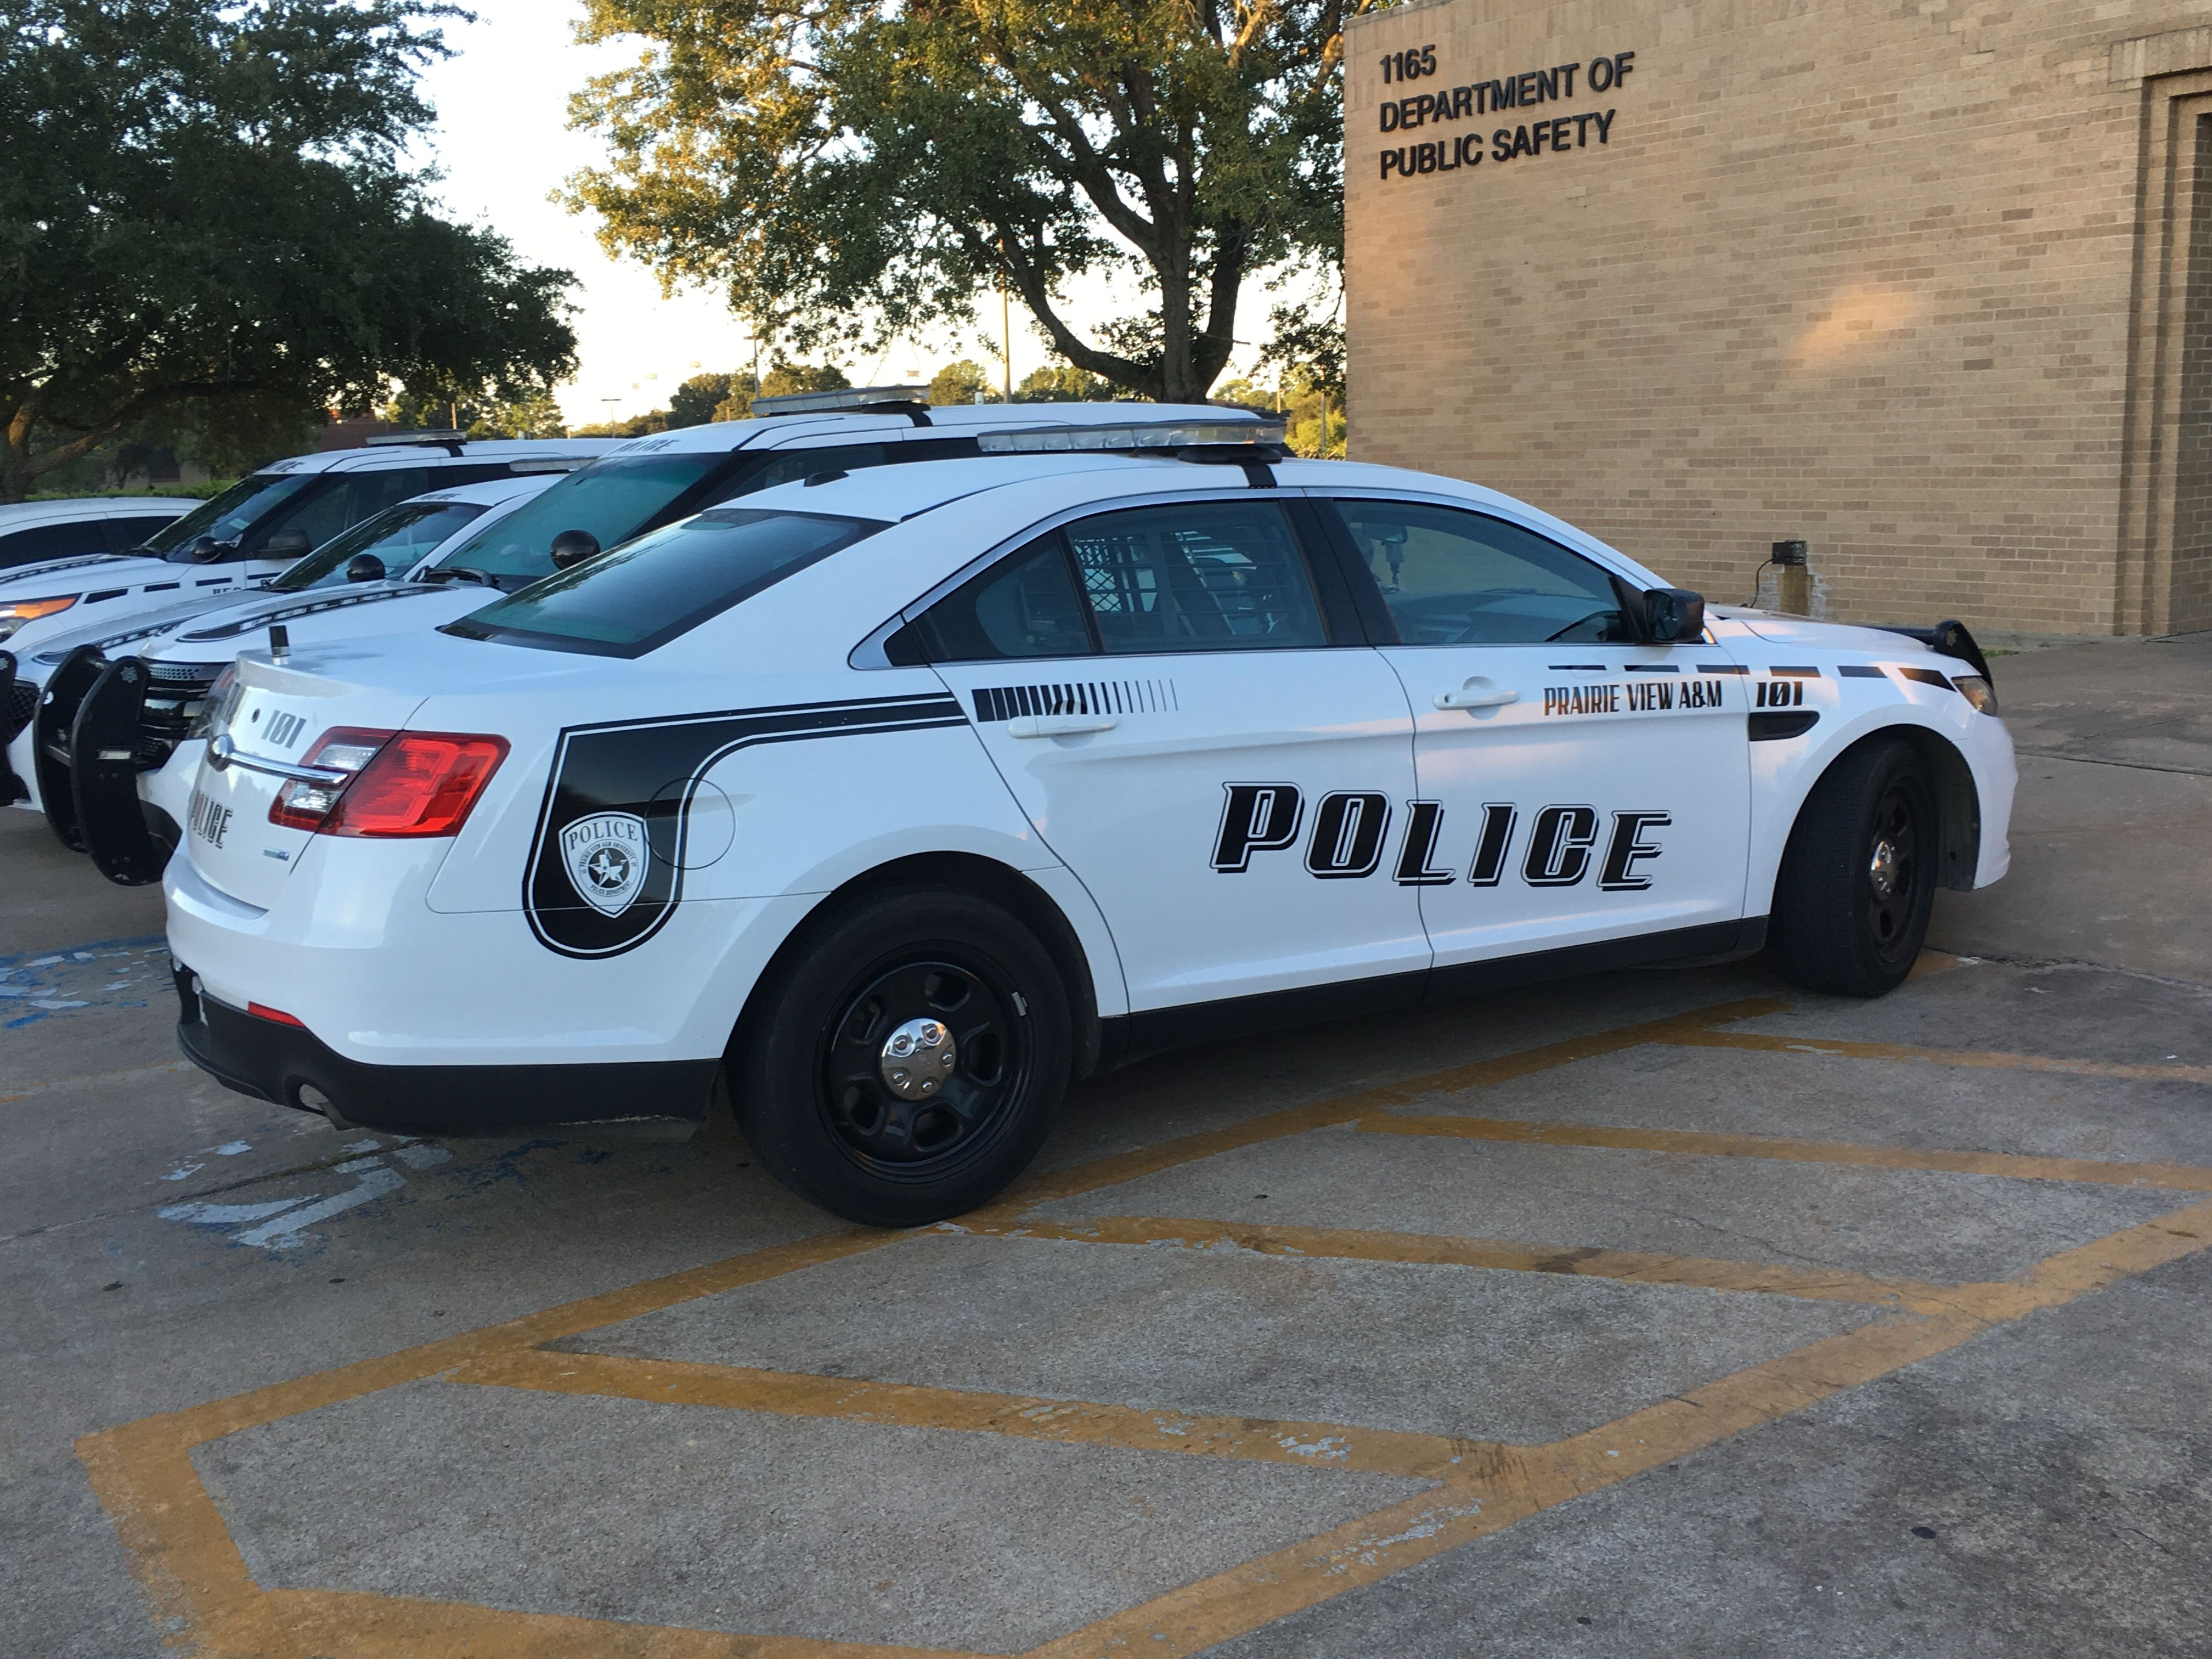 Prairie View A M University Police Department Ford Interceptor Texas Us Police Car Police Cars Ford Police